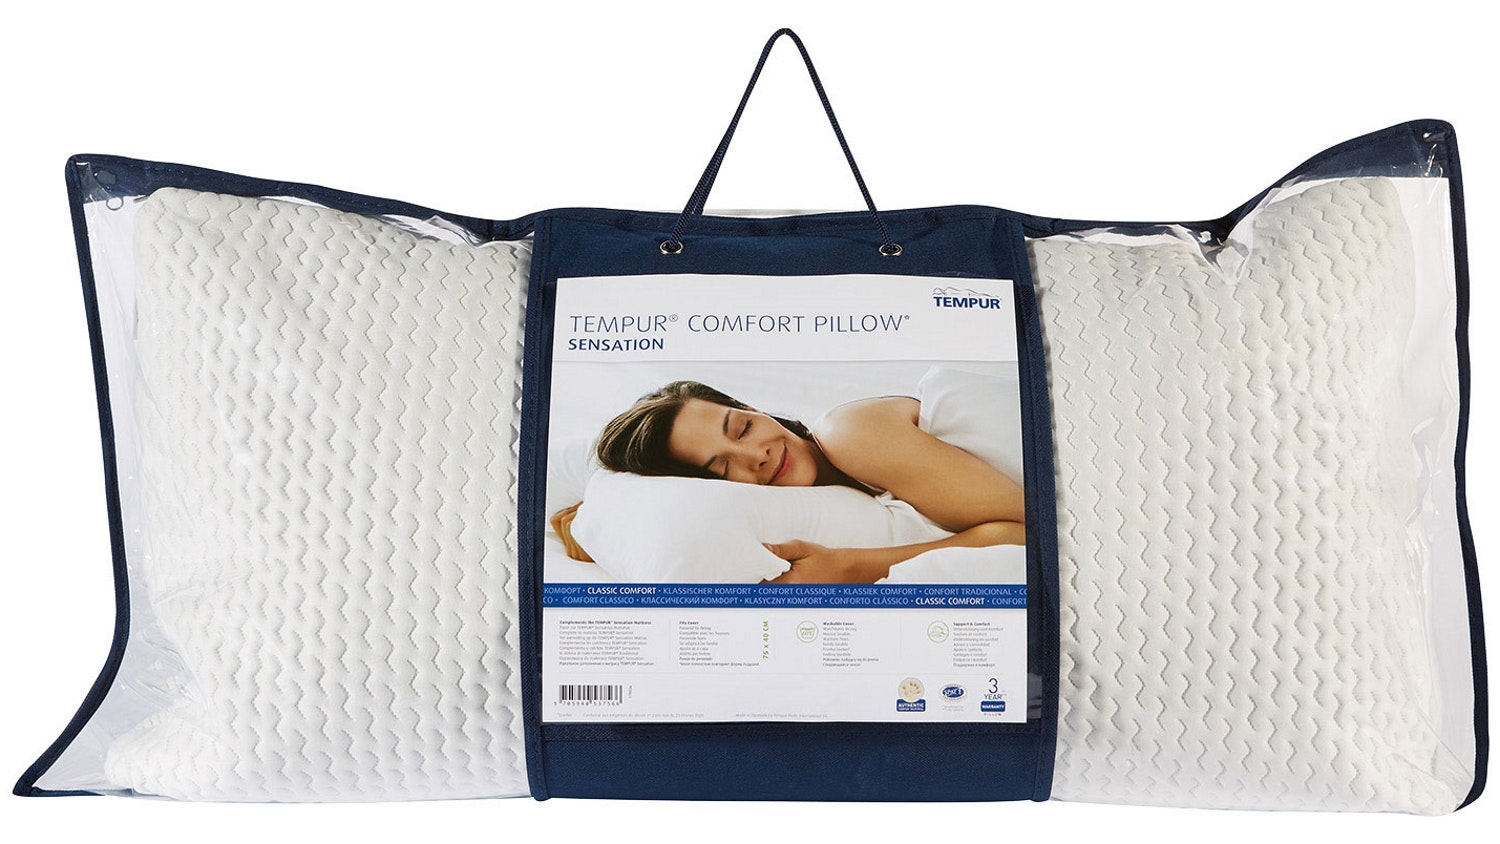 Tempur Comfort Sensation Pillow